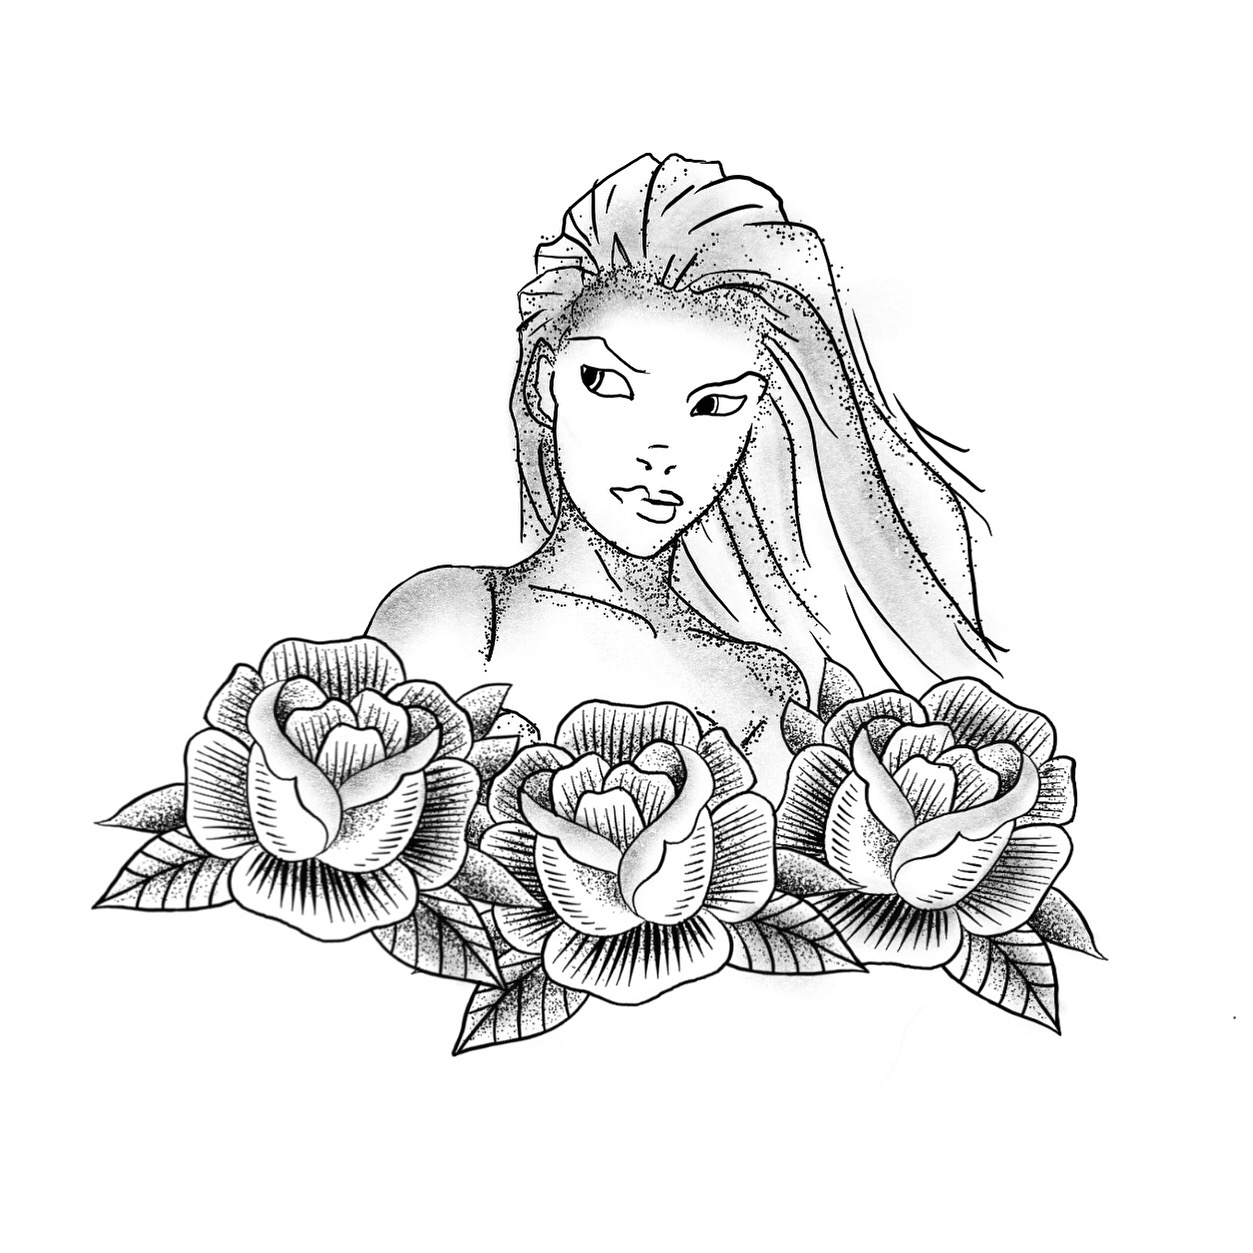 This was very interesting to draw as it was half inspired by a basic traditional rose but also by the style of cartoon superhero/heroin it was very interesting to merge these styles together. I do not intend to get this design tattooed.